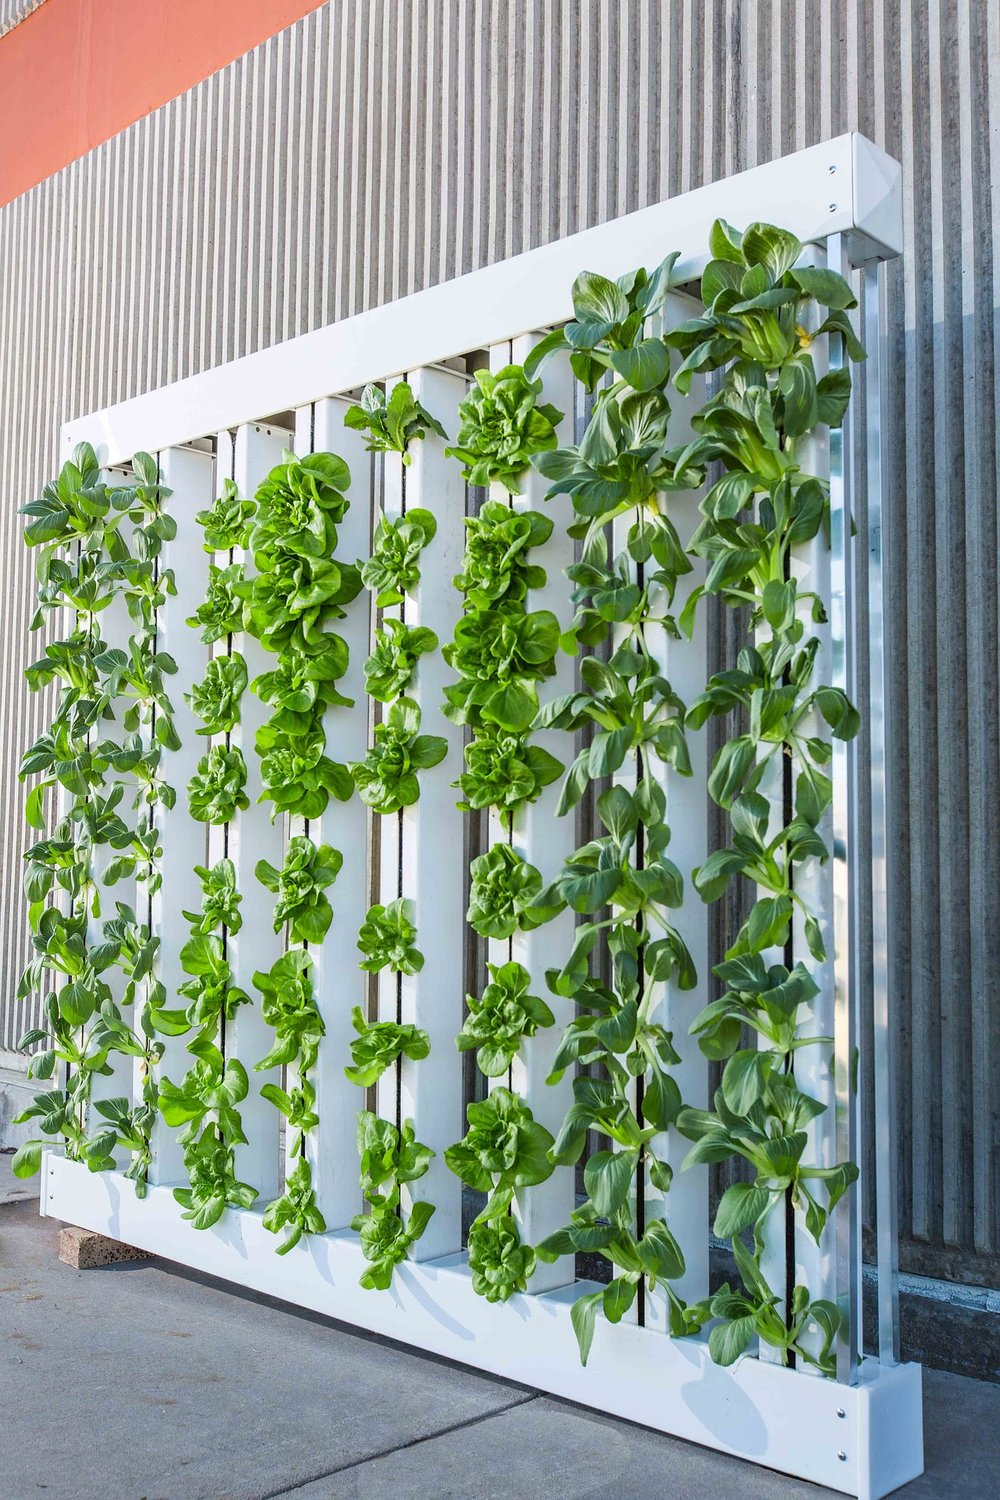 vertical-farm-916337_1920.jpg